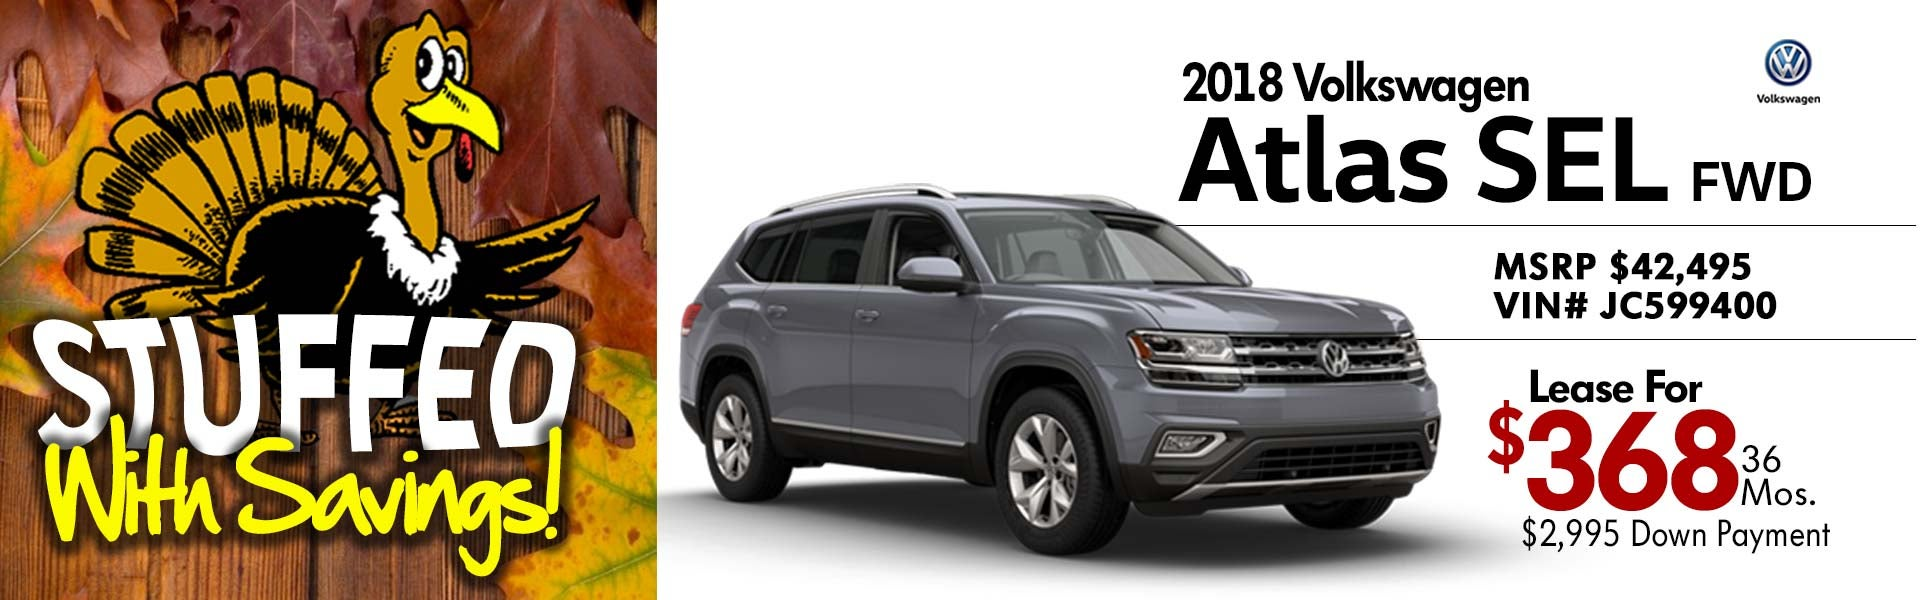 New Volkswagen Lease And Sale Offers In Tinton Falls Nj